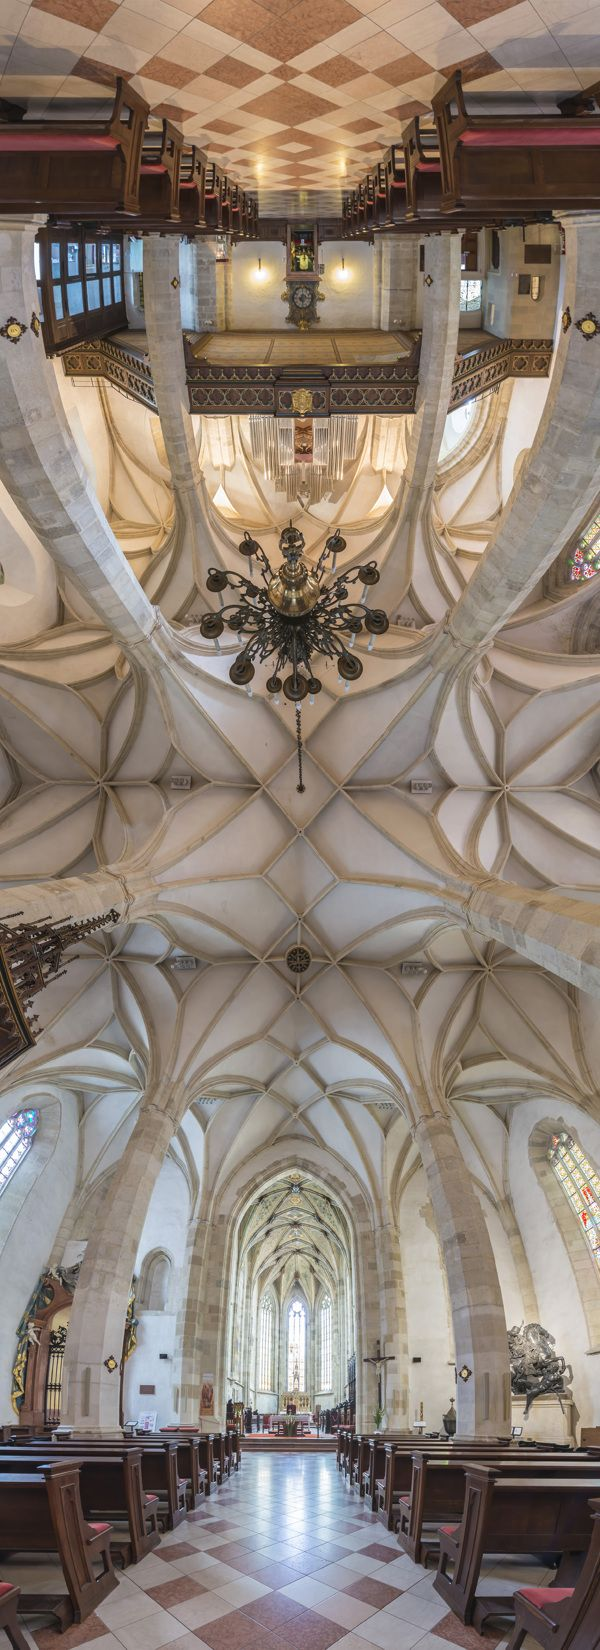 Vertical Panoramas Of Several Churches Around The Globe - Page 6 of 16 - Explore like a Gipsy, Study like a Ninja